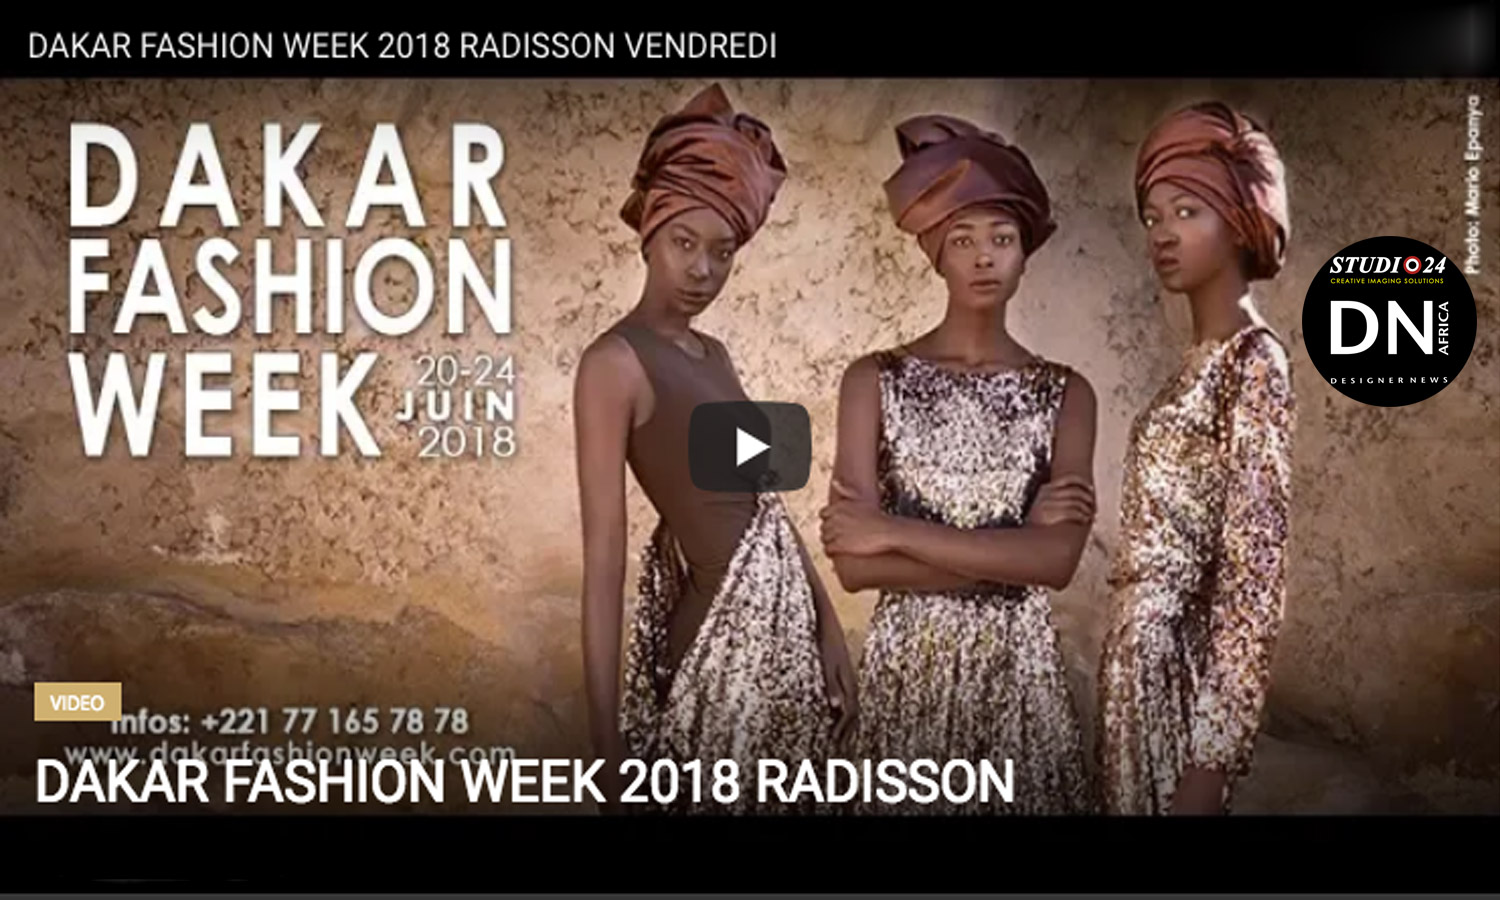 AFRICAN FASHION STYLE MAGAZINE - DAKAR FASHION WEEK SEASON 16TH THEMA MY AFRICA -DAKAR FASHION WEEK 2018 RADISSON - ORGANIZER ADAMA PARIS - FA CHANNEL - FASHION AFRICA TV = Media Partner DN MAG, DN AFRICA -STUDIO 24 NIGERIA - STUDIO 24 INTERNATIONAL